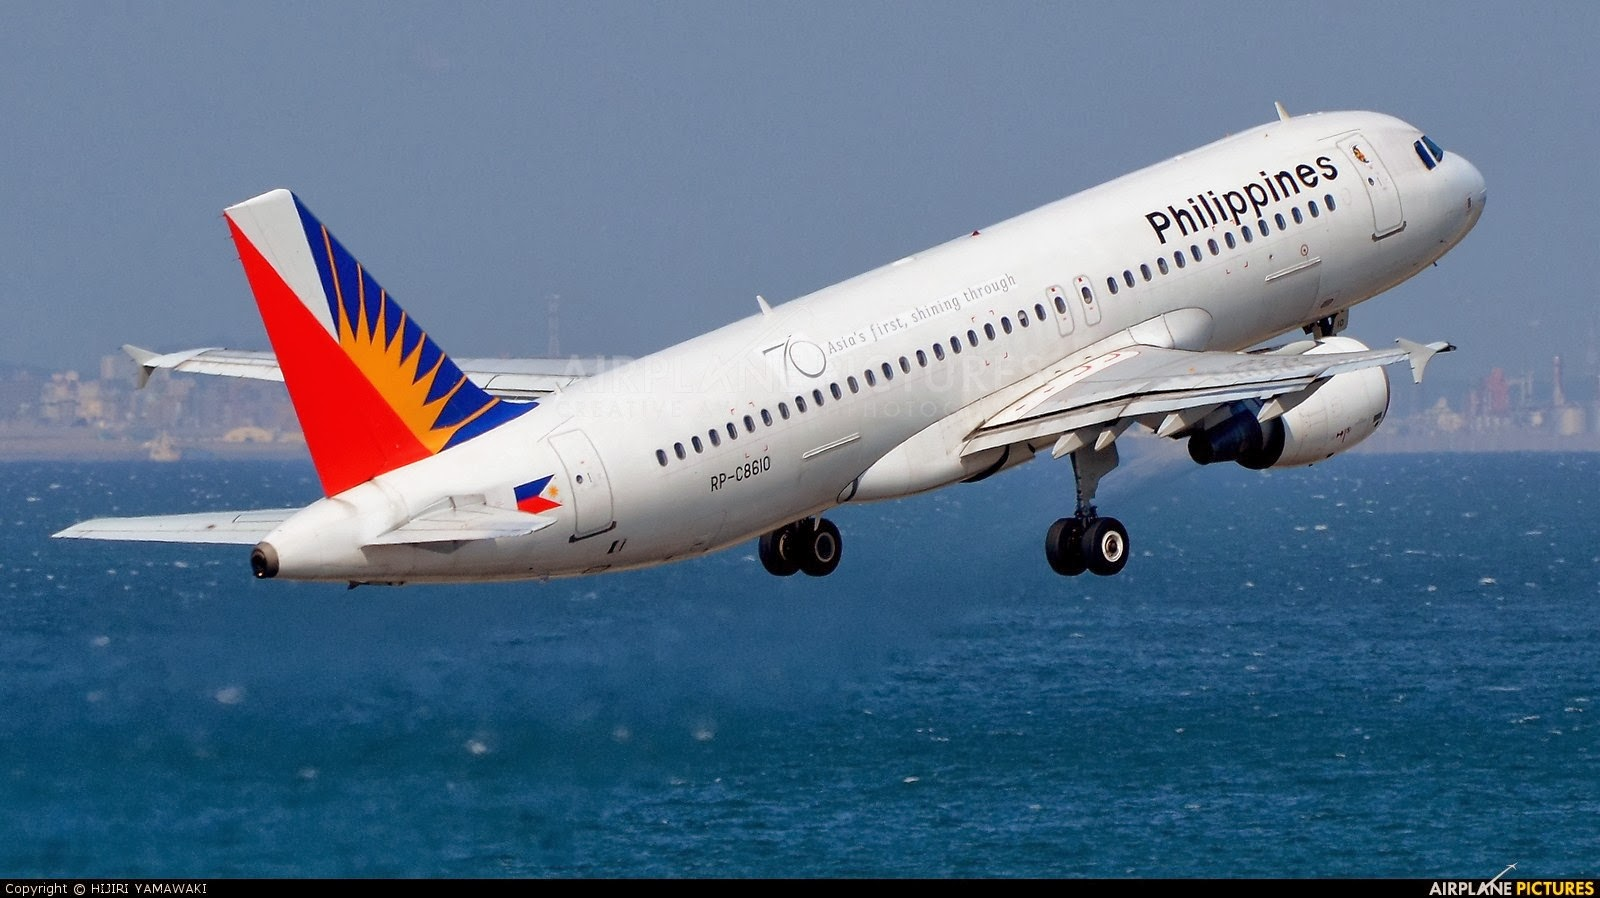 PAL Manila-Paris Flight